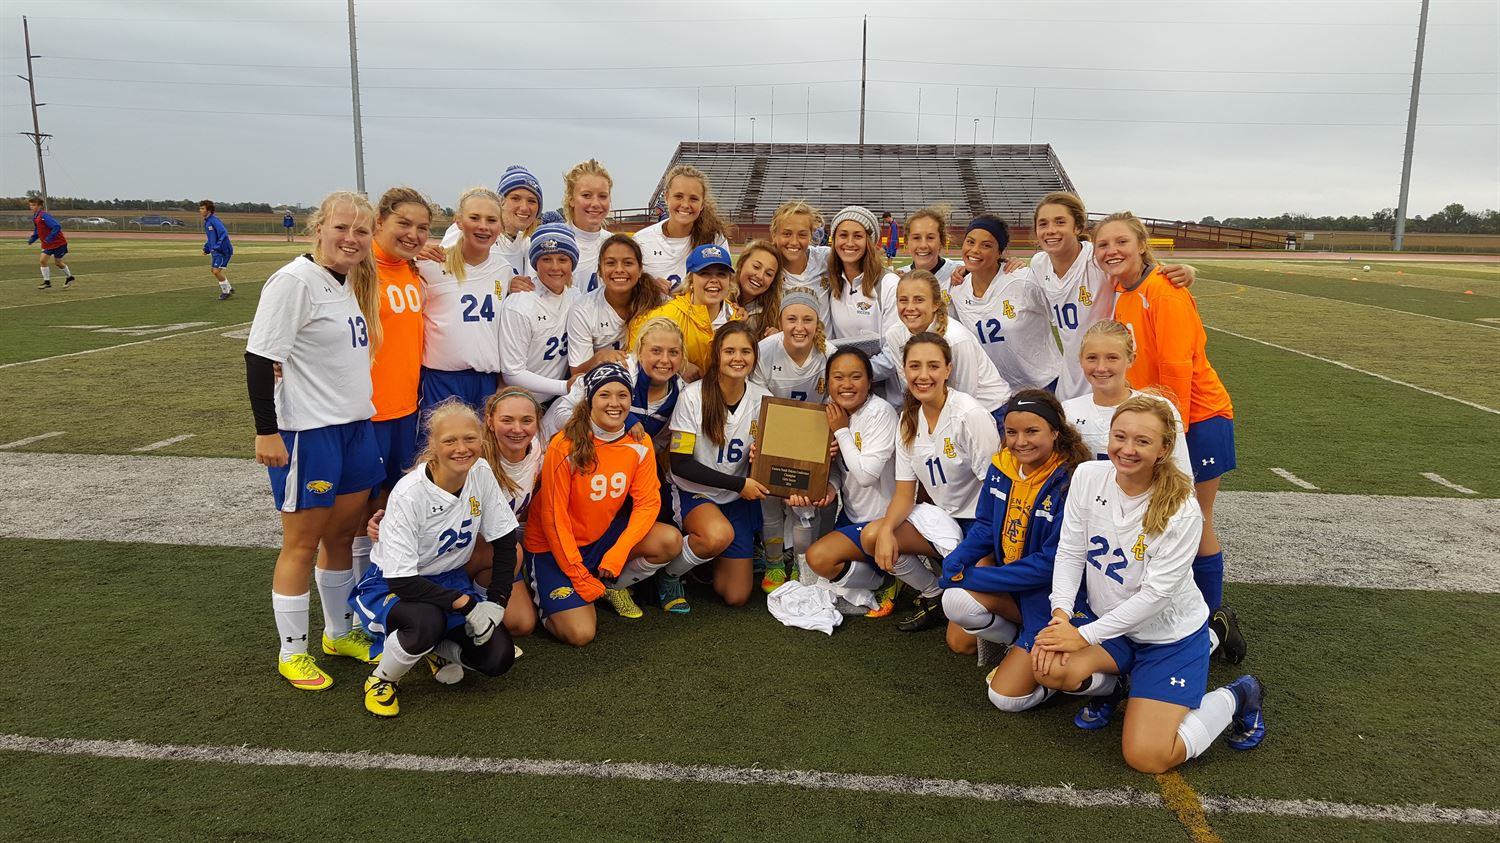 Aberdeen Central High School - Girls Varsity Soccer